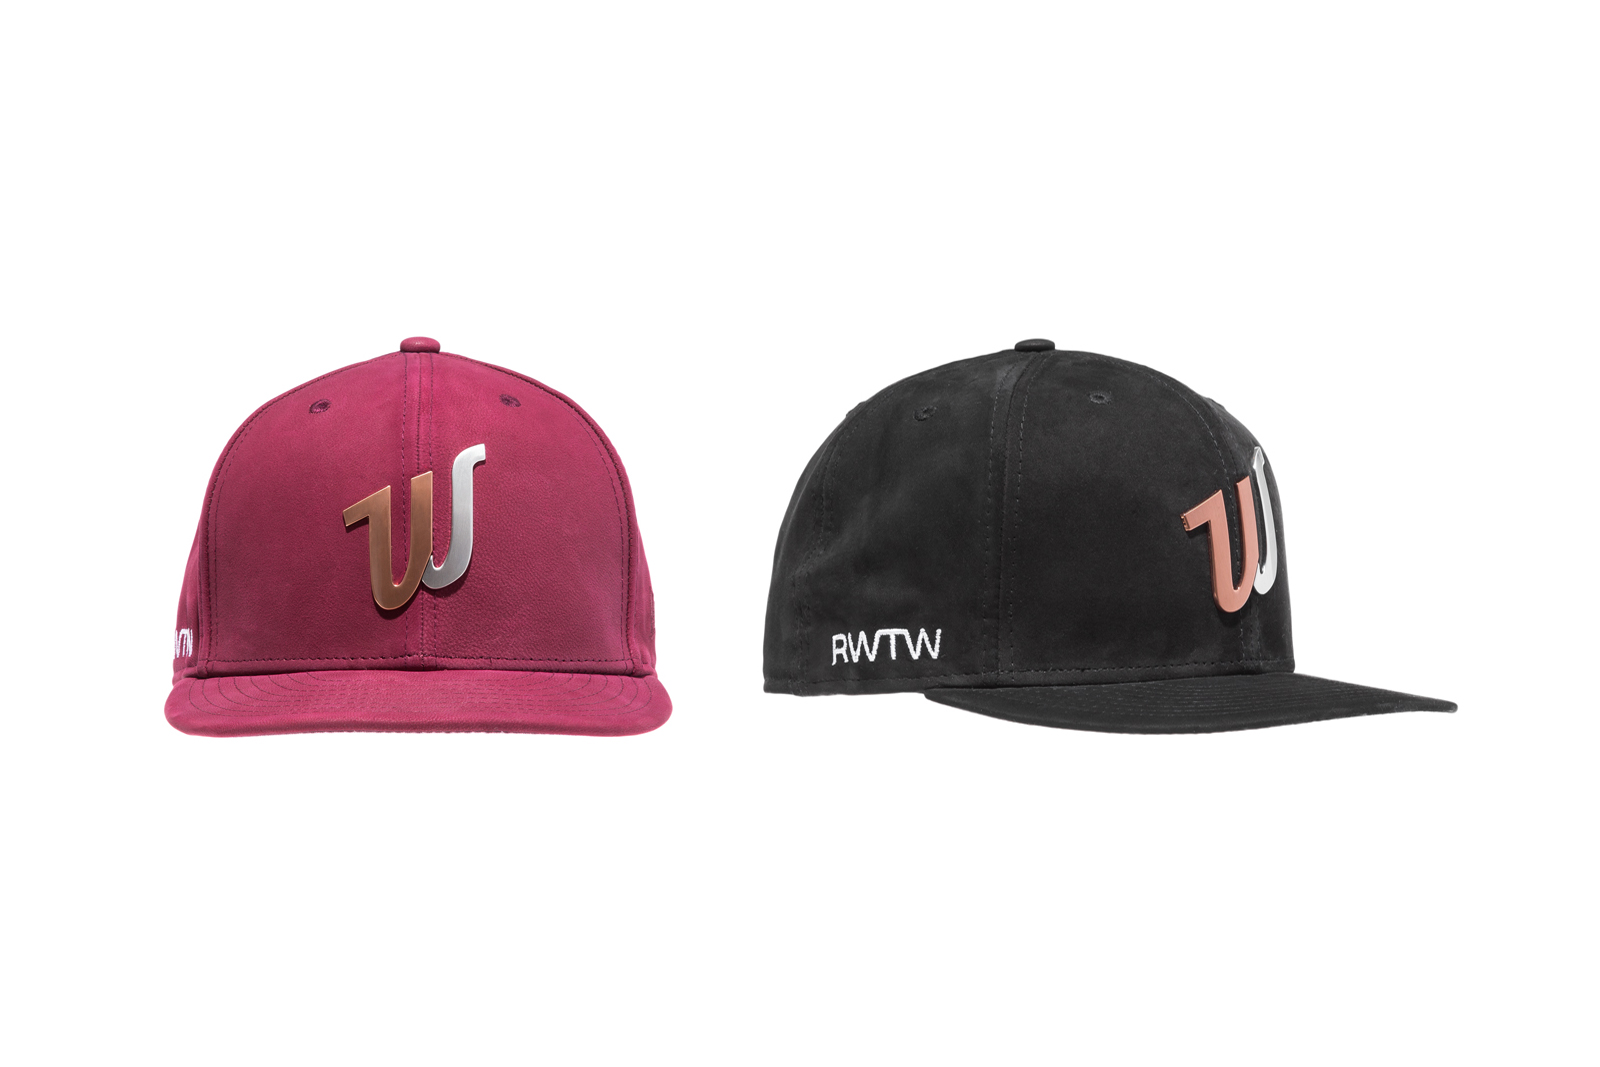 LeBron's Post-Game 7 Return to Instagram Ensured These Hats Sold out in a Heartbeat